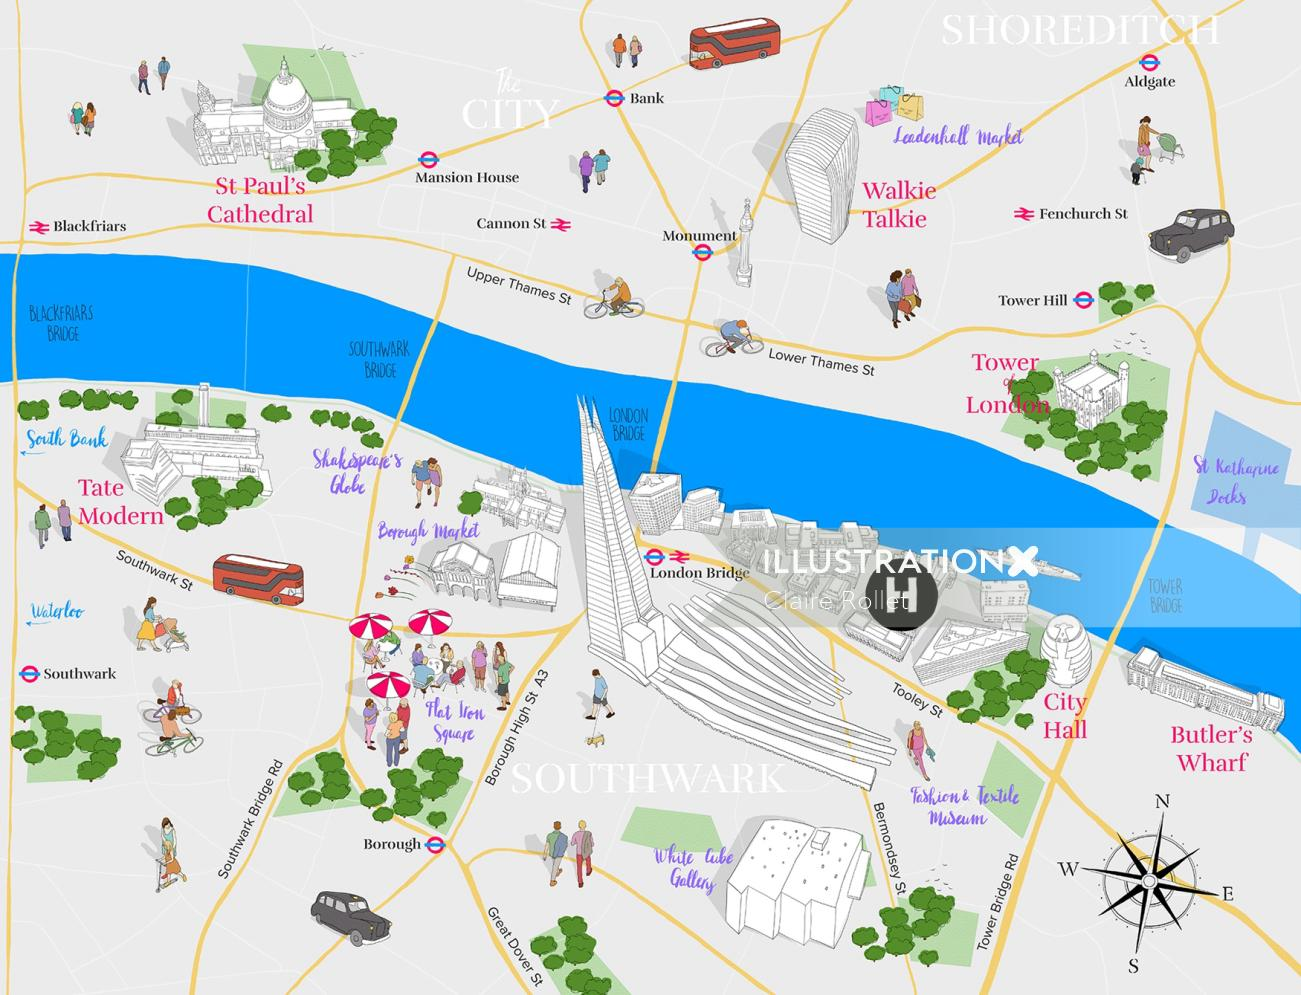 Map design for promotion of re-branding of London Bridge-Tooley street area